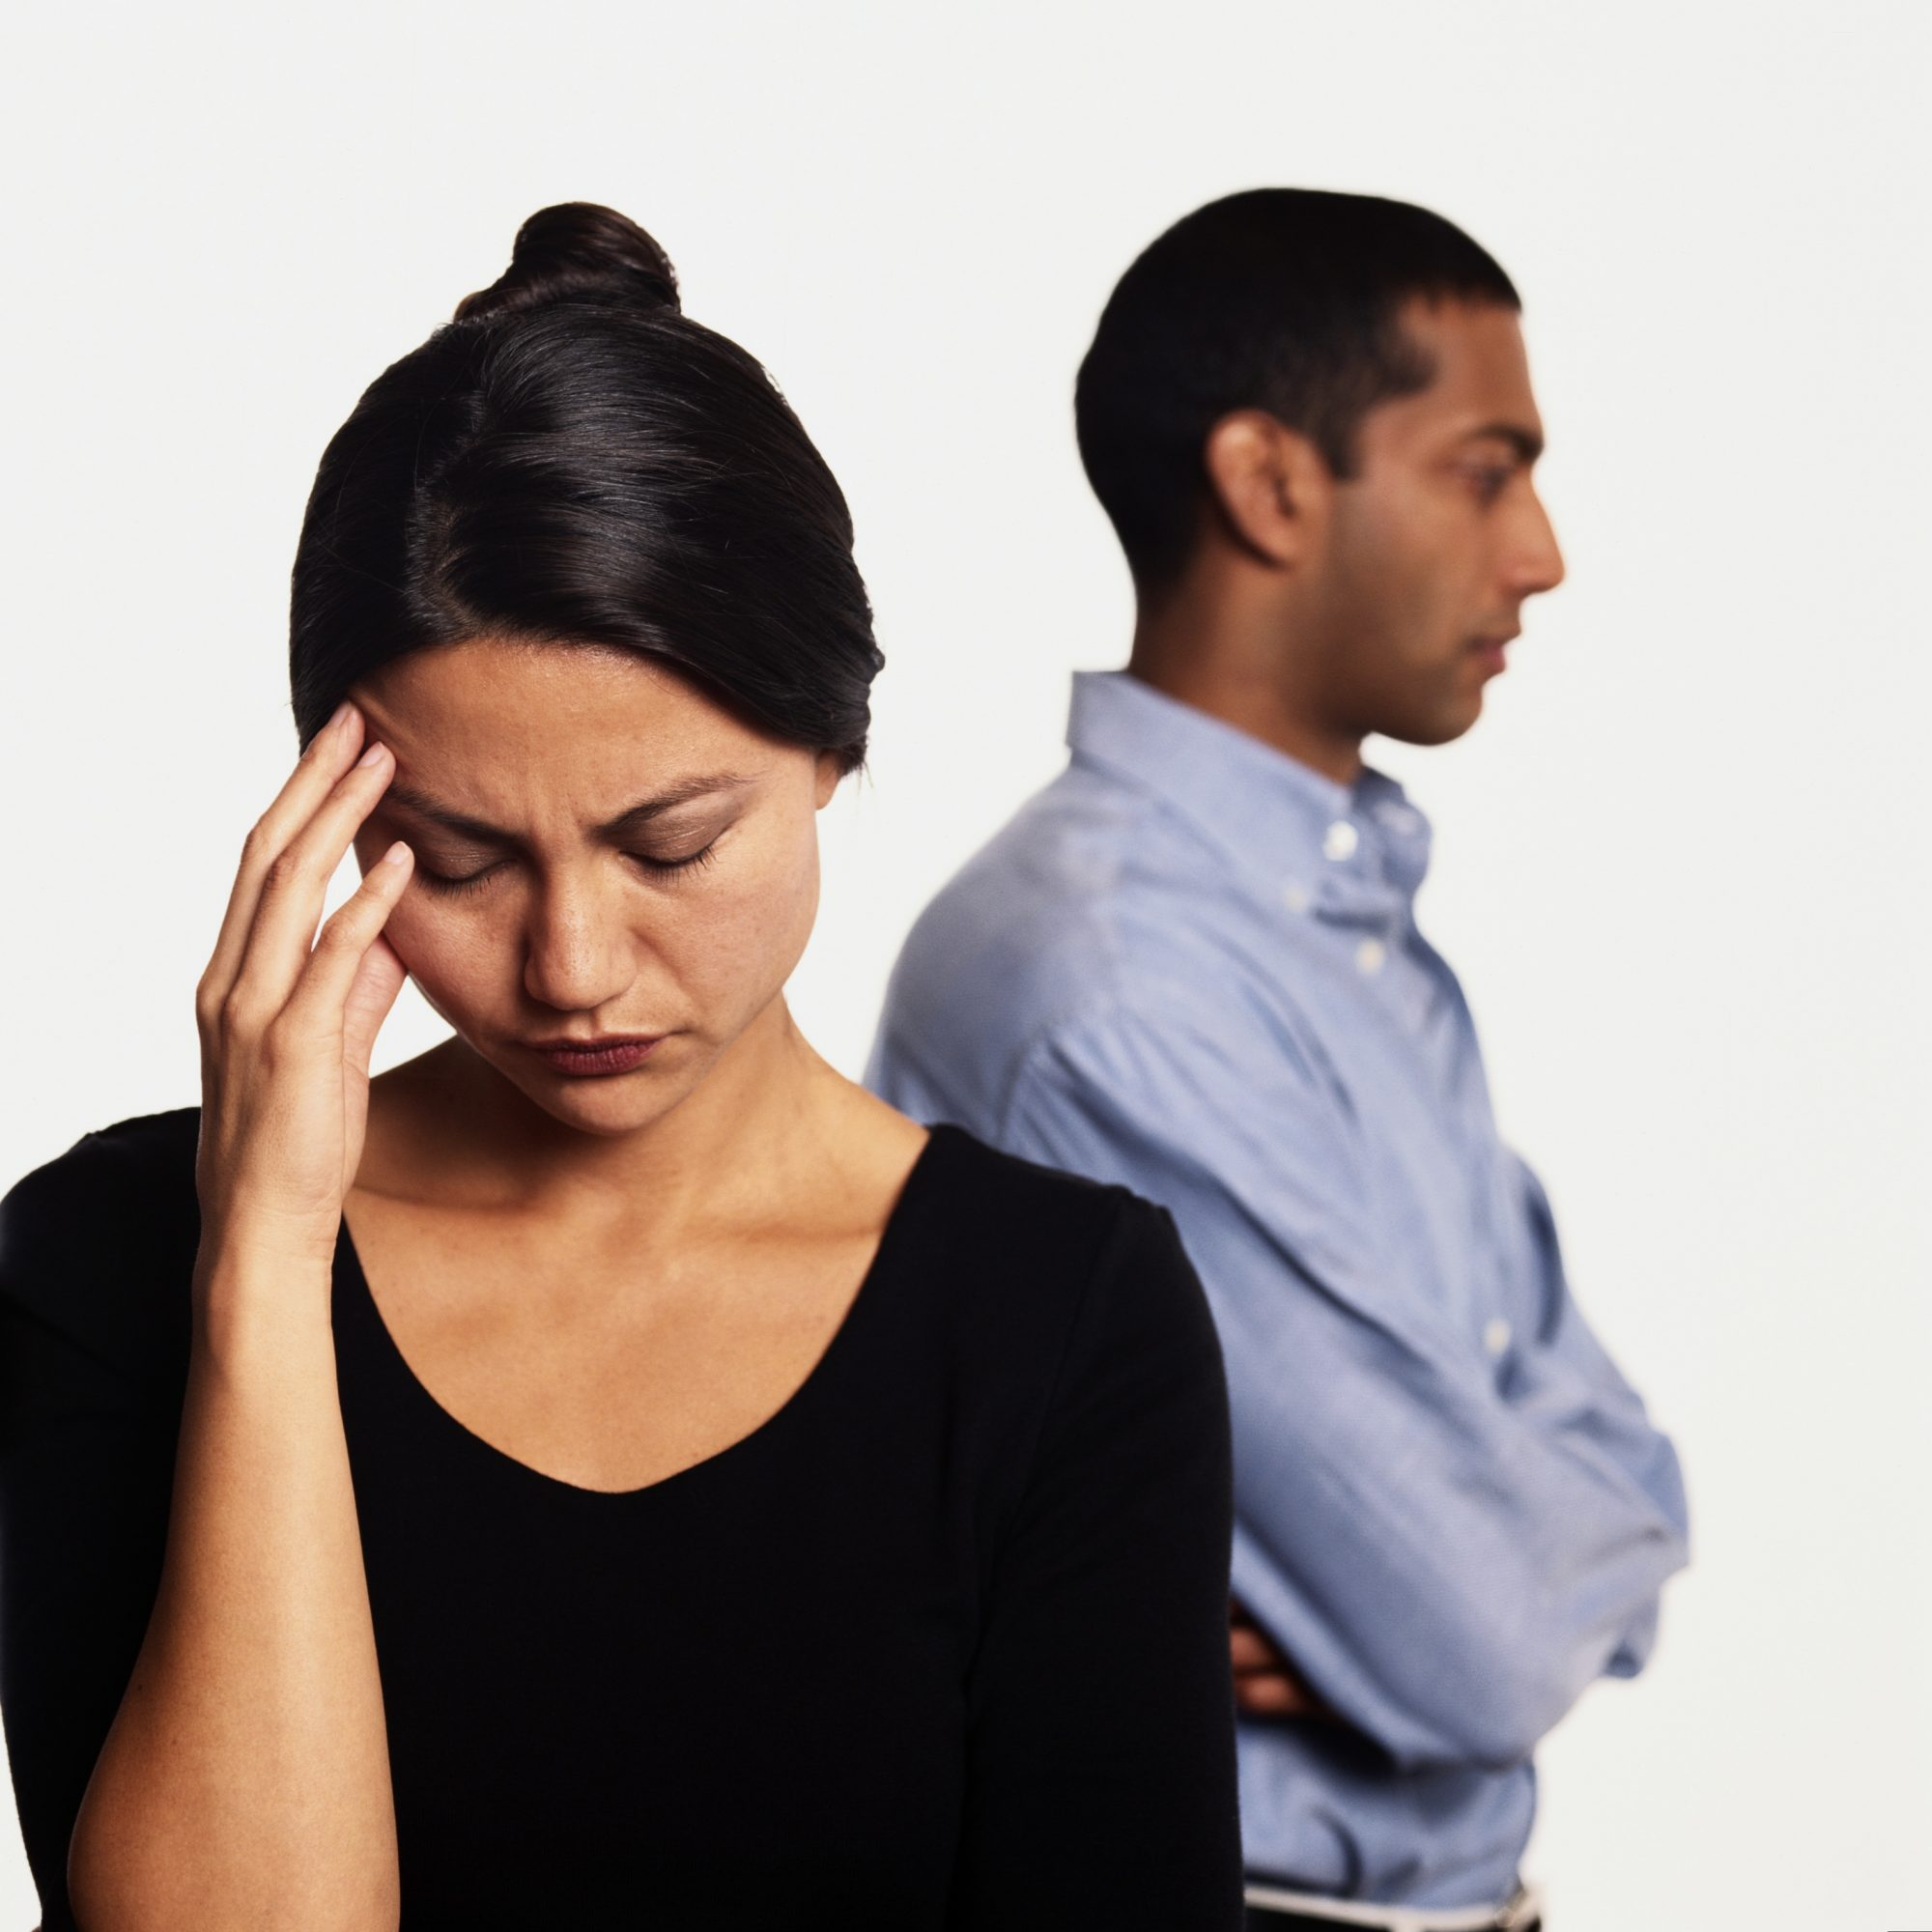 Relationship Anxiety - Freedom From Anxiety